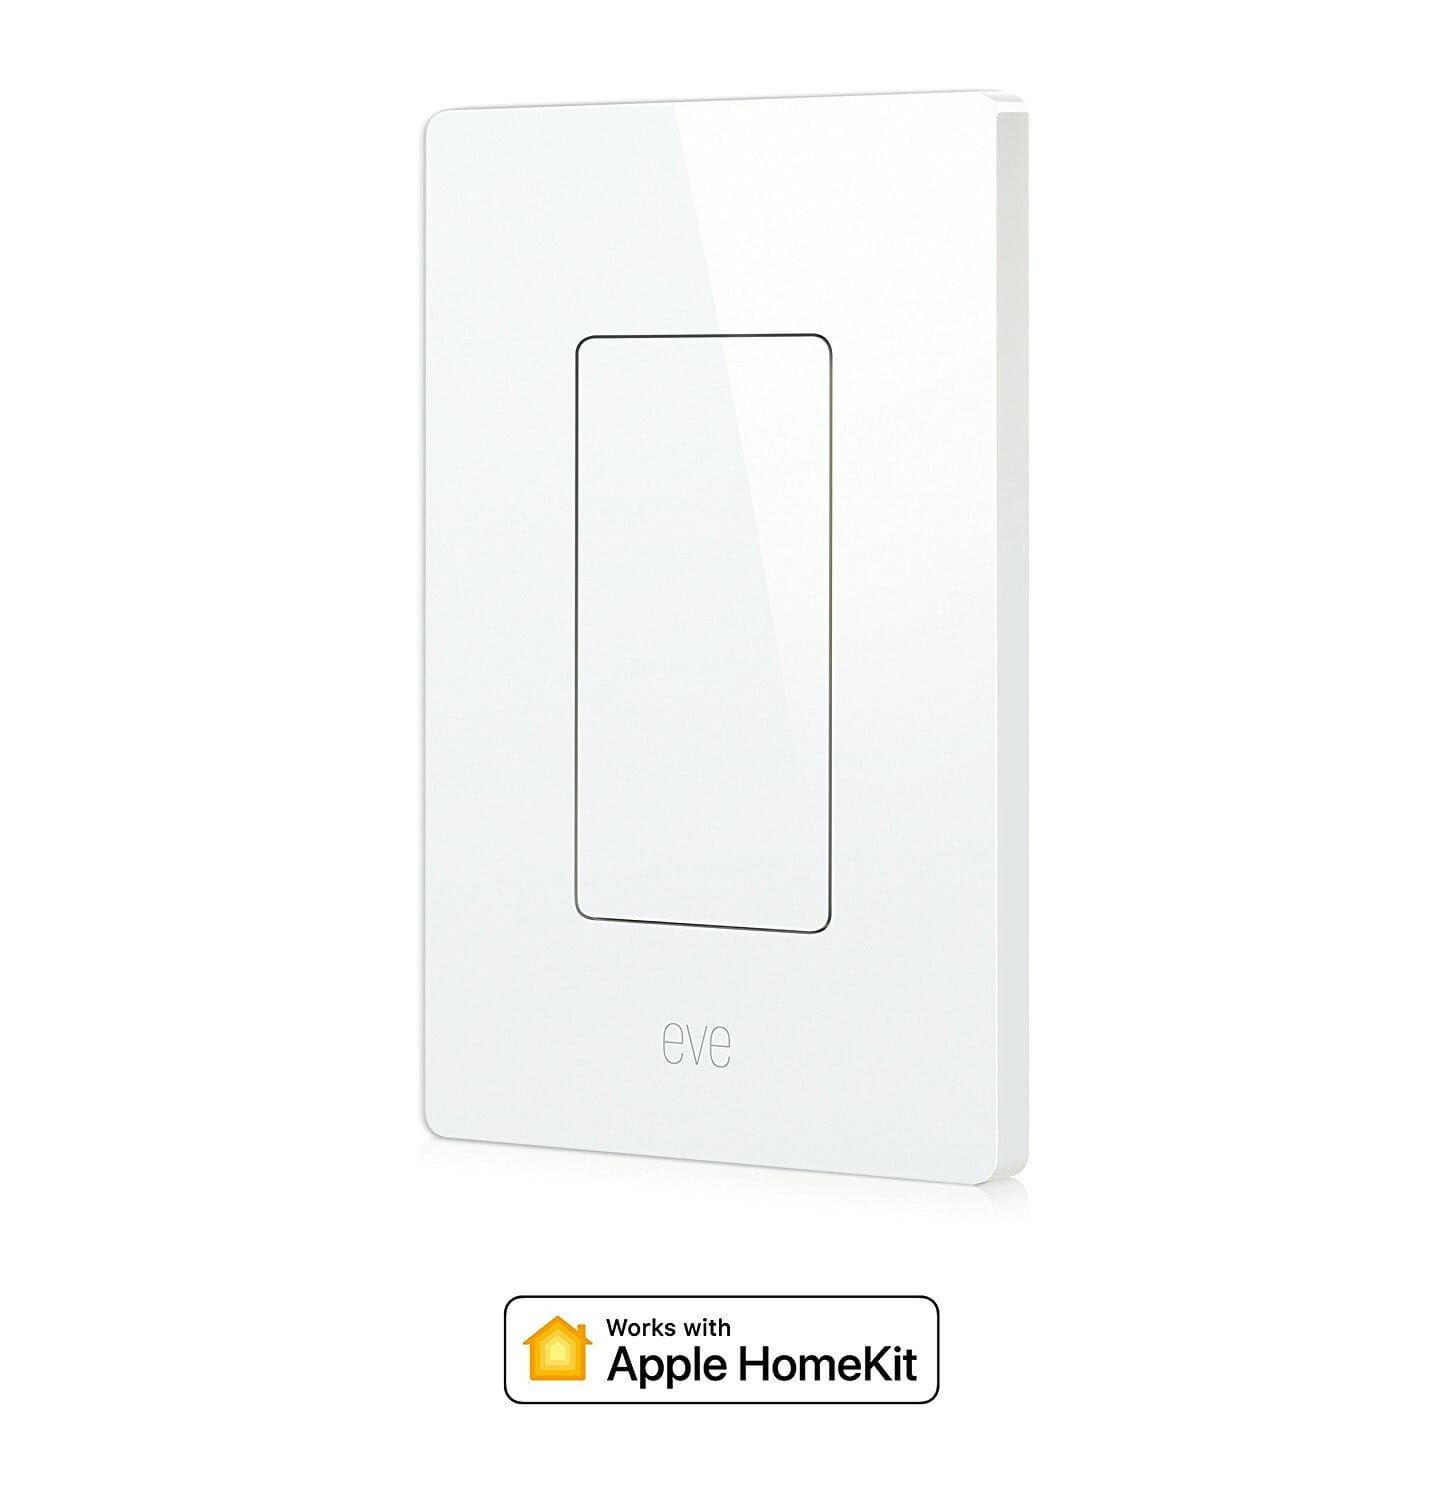 Homekit Light Switches Dimmers Review Automation Because Smart Require Both Hot And Neutral Eve Switch